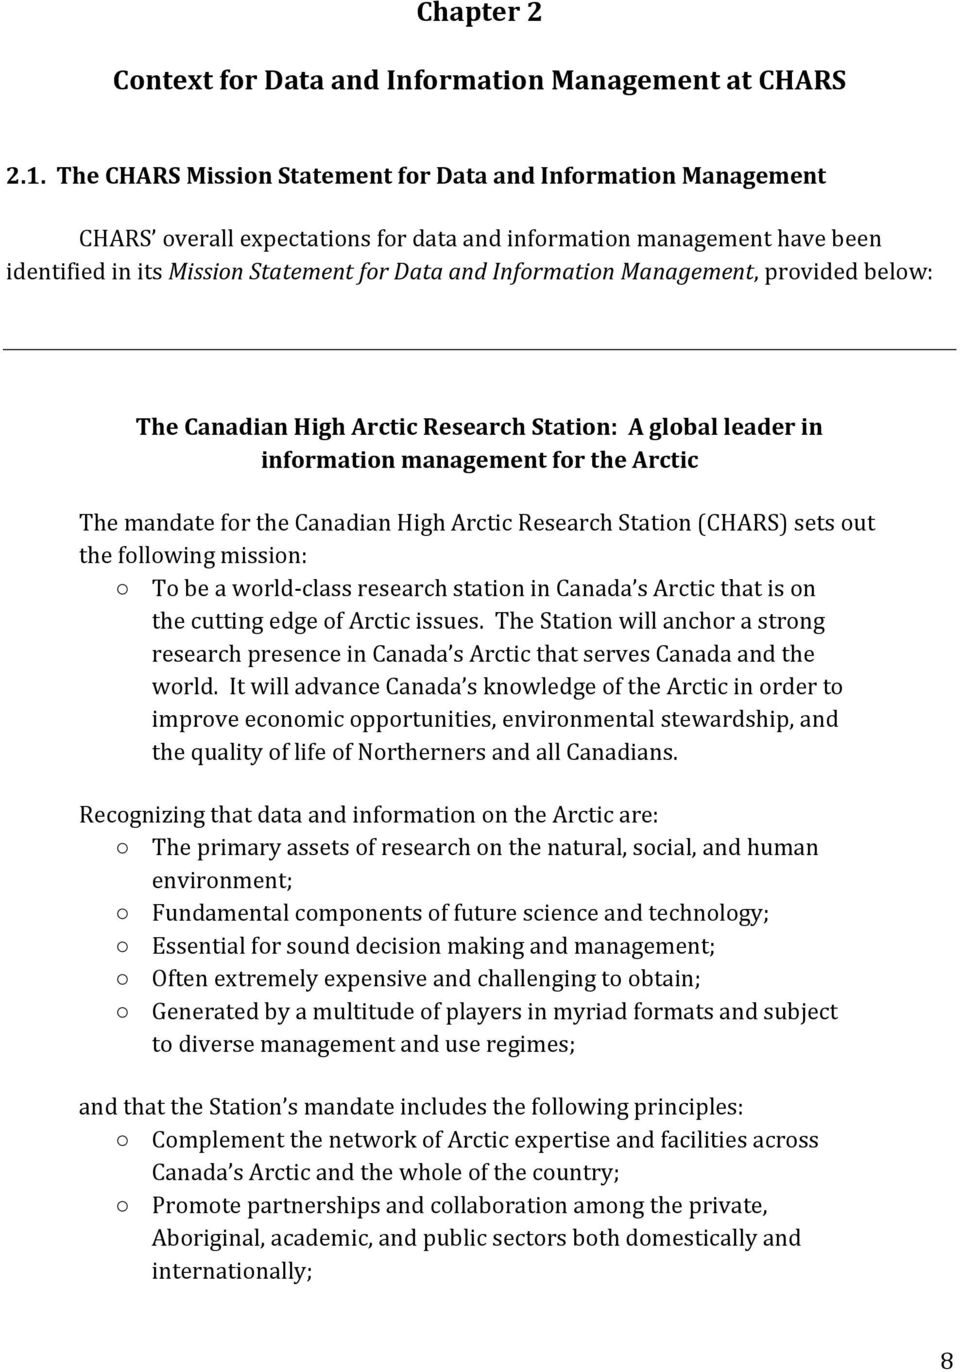 Management, provided below: The Canadian High Arctic Research Station: A global leader in information management for the Arctic The mandate for the Canadian High Arctic Research Station (CHARS) sets